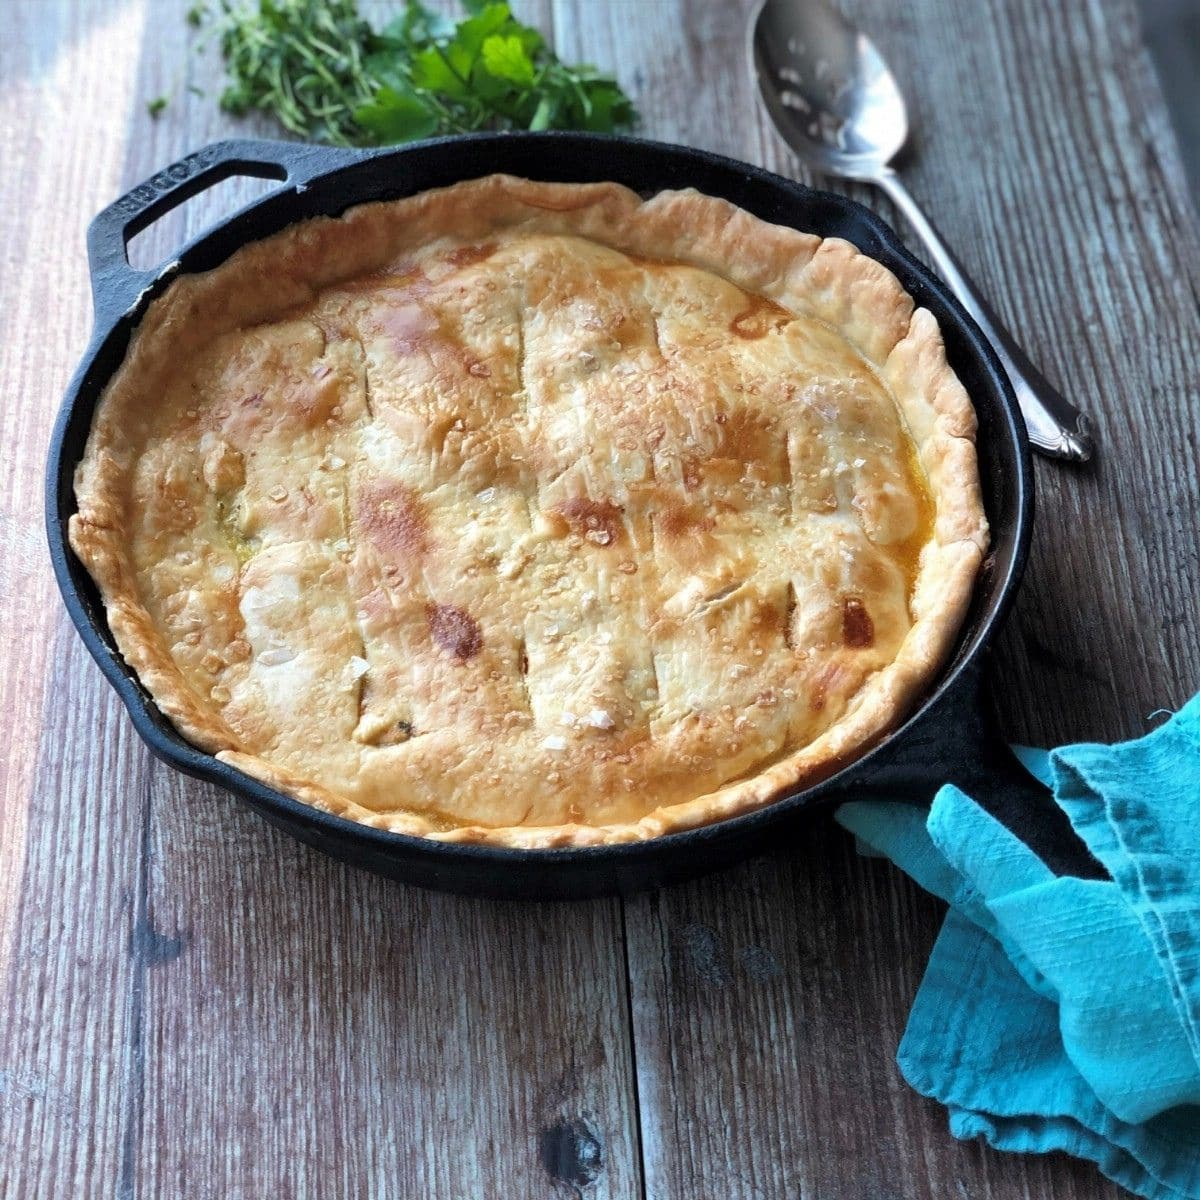 Chicken pot pie fresh out of the oven.